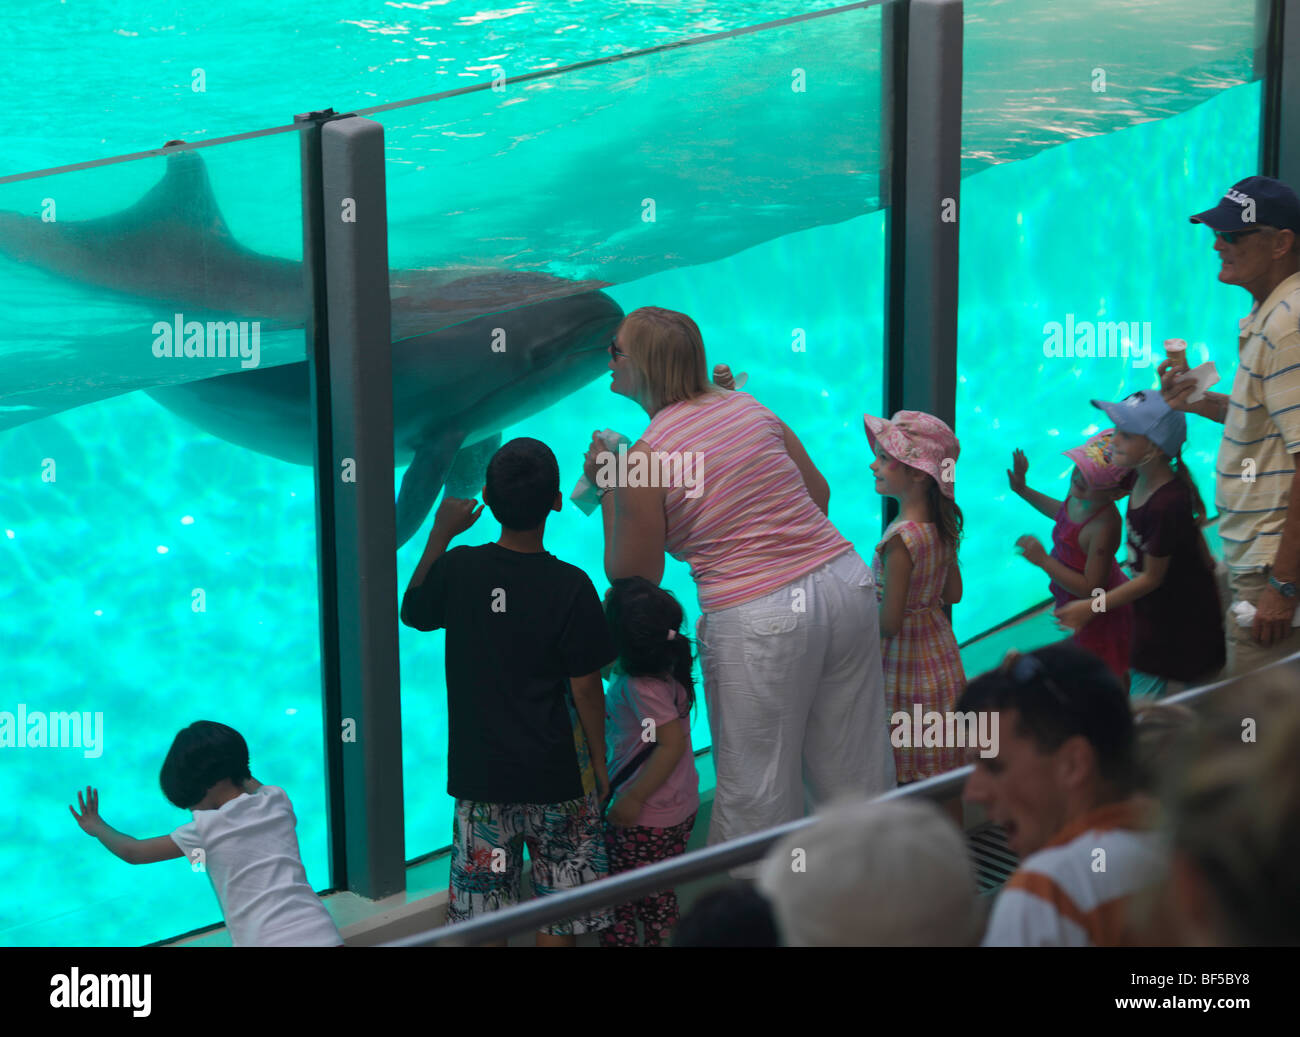 People watching dolphins in a tank - Stock Image